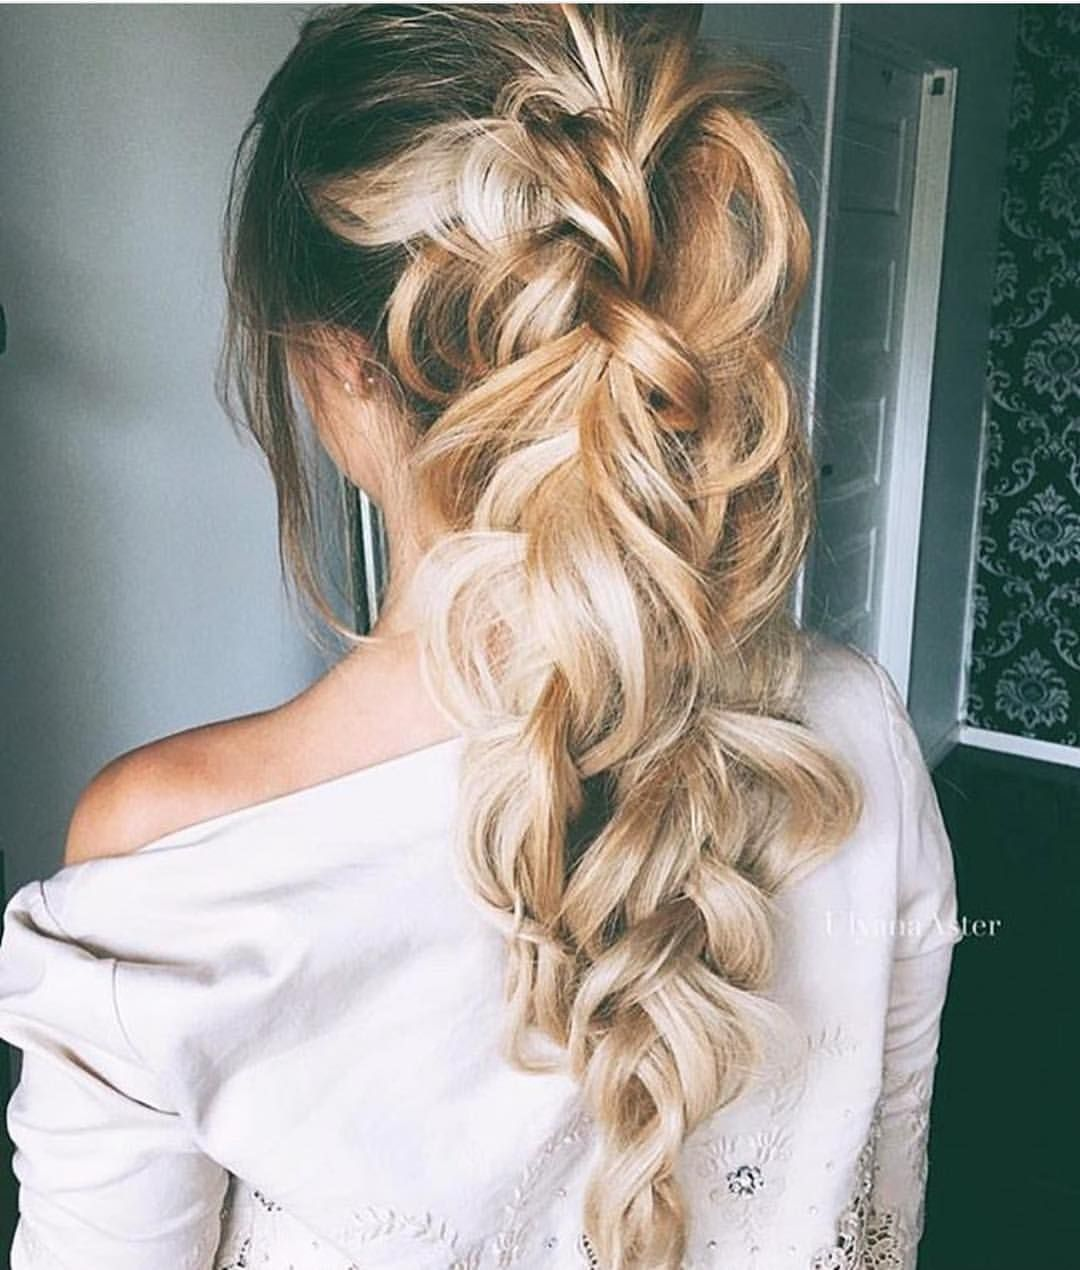 Pin by shyam agrawal on hair style pinterest hair style braided